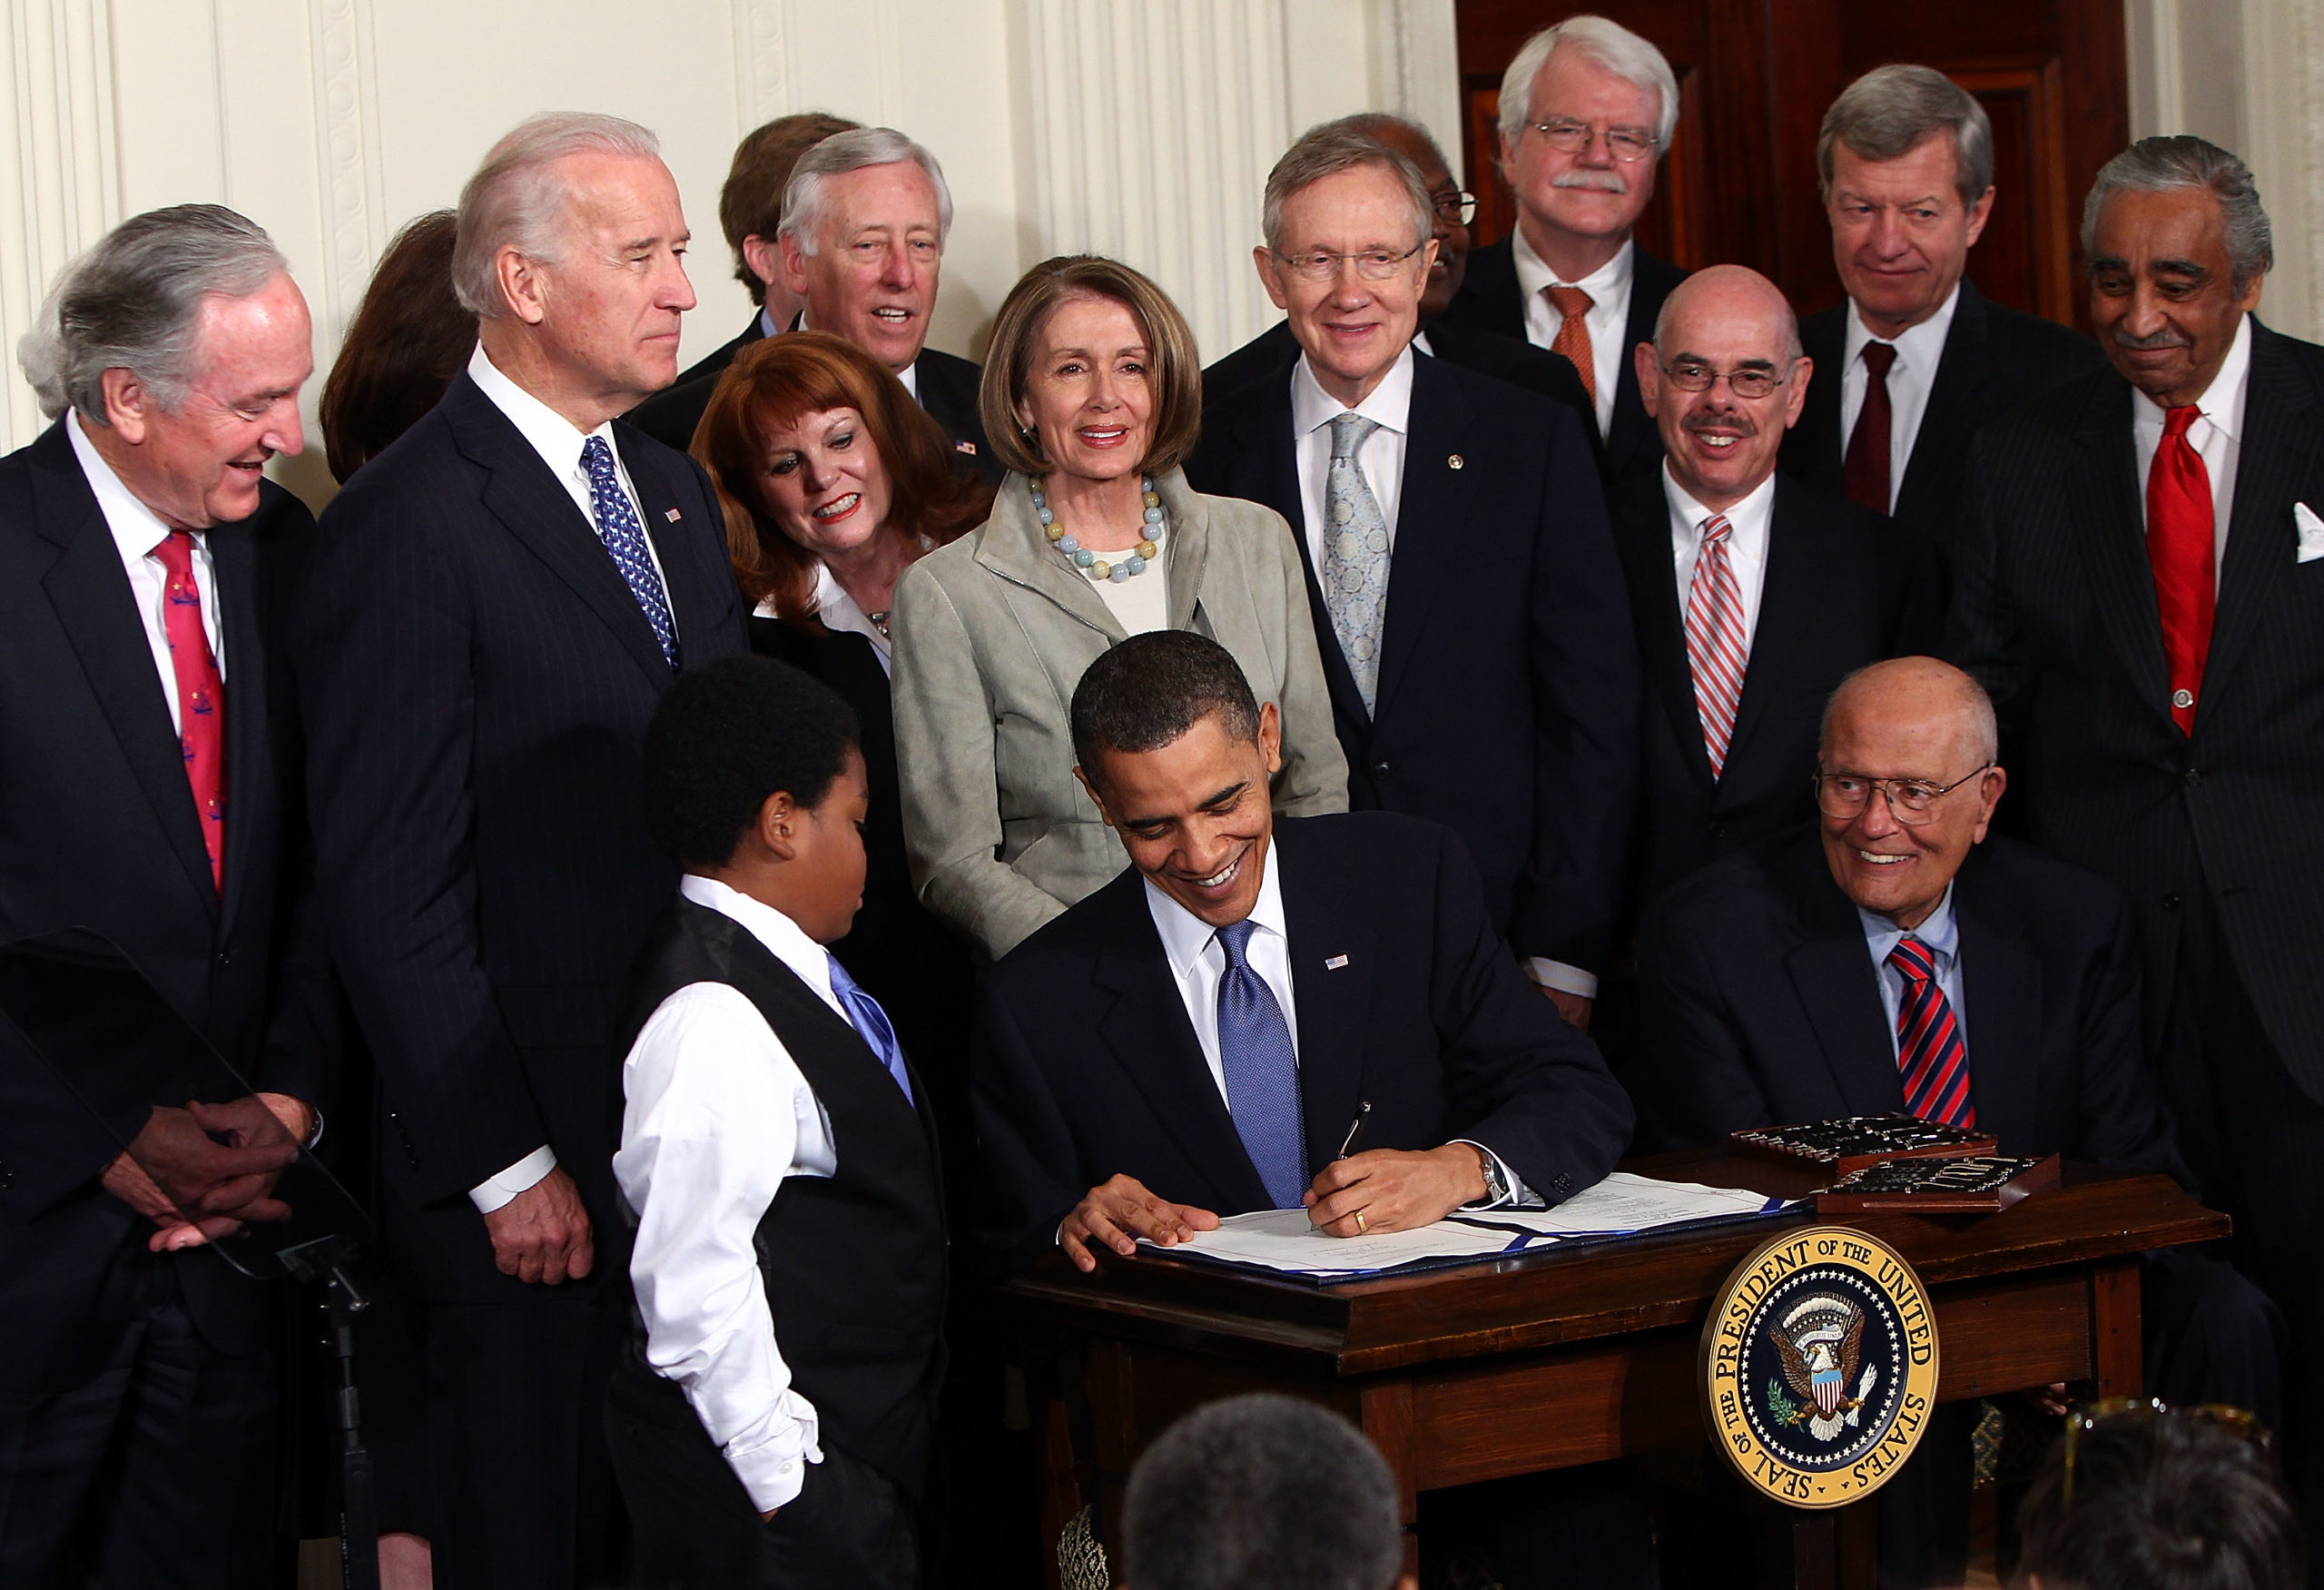 Former U.S. president Barack Obama signs the Affordable Health Care for America Act during a ceremony with fellow Democrats in the East Room of the White House March 23, 2010 in Washington, DC. (Win McNamee/Getty Images)